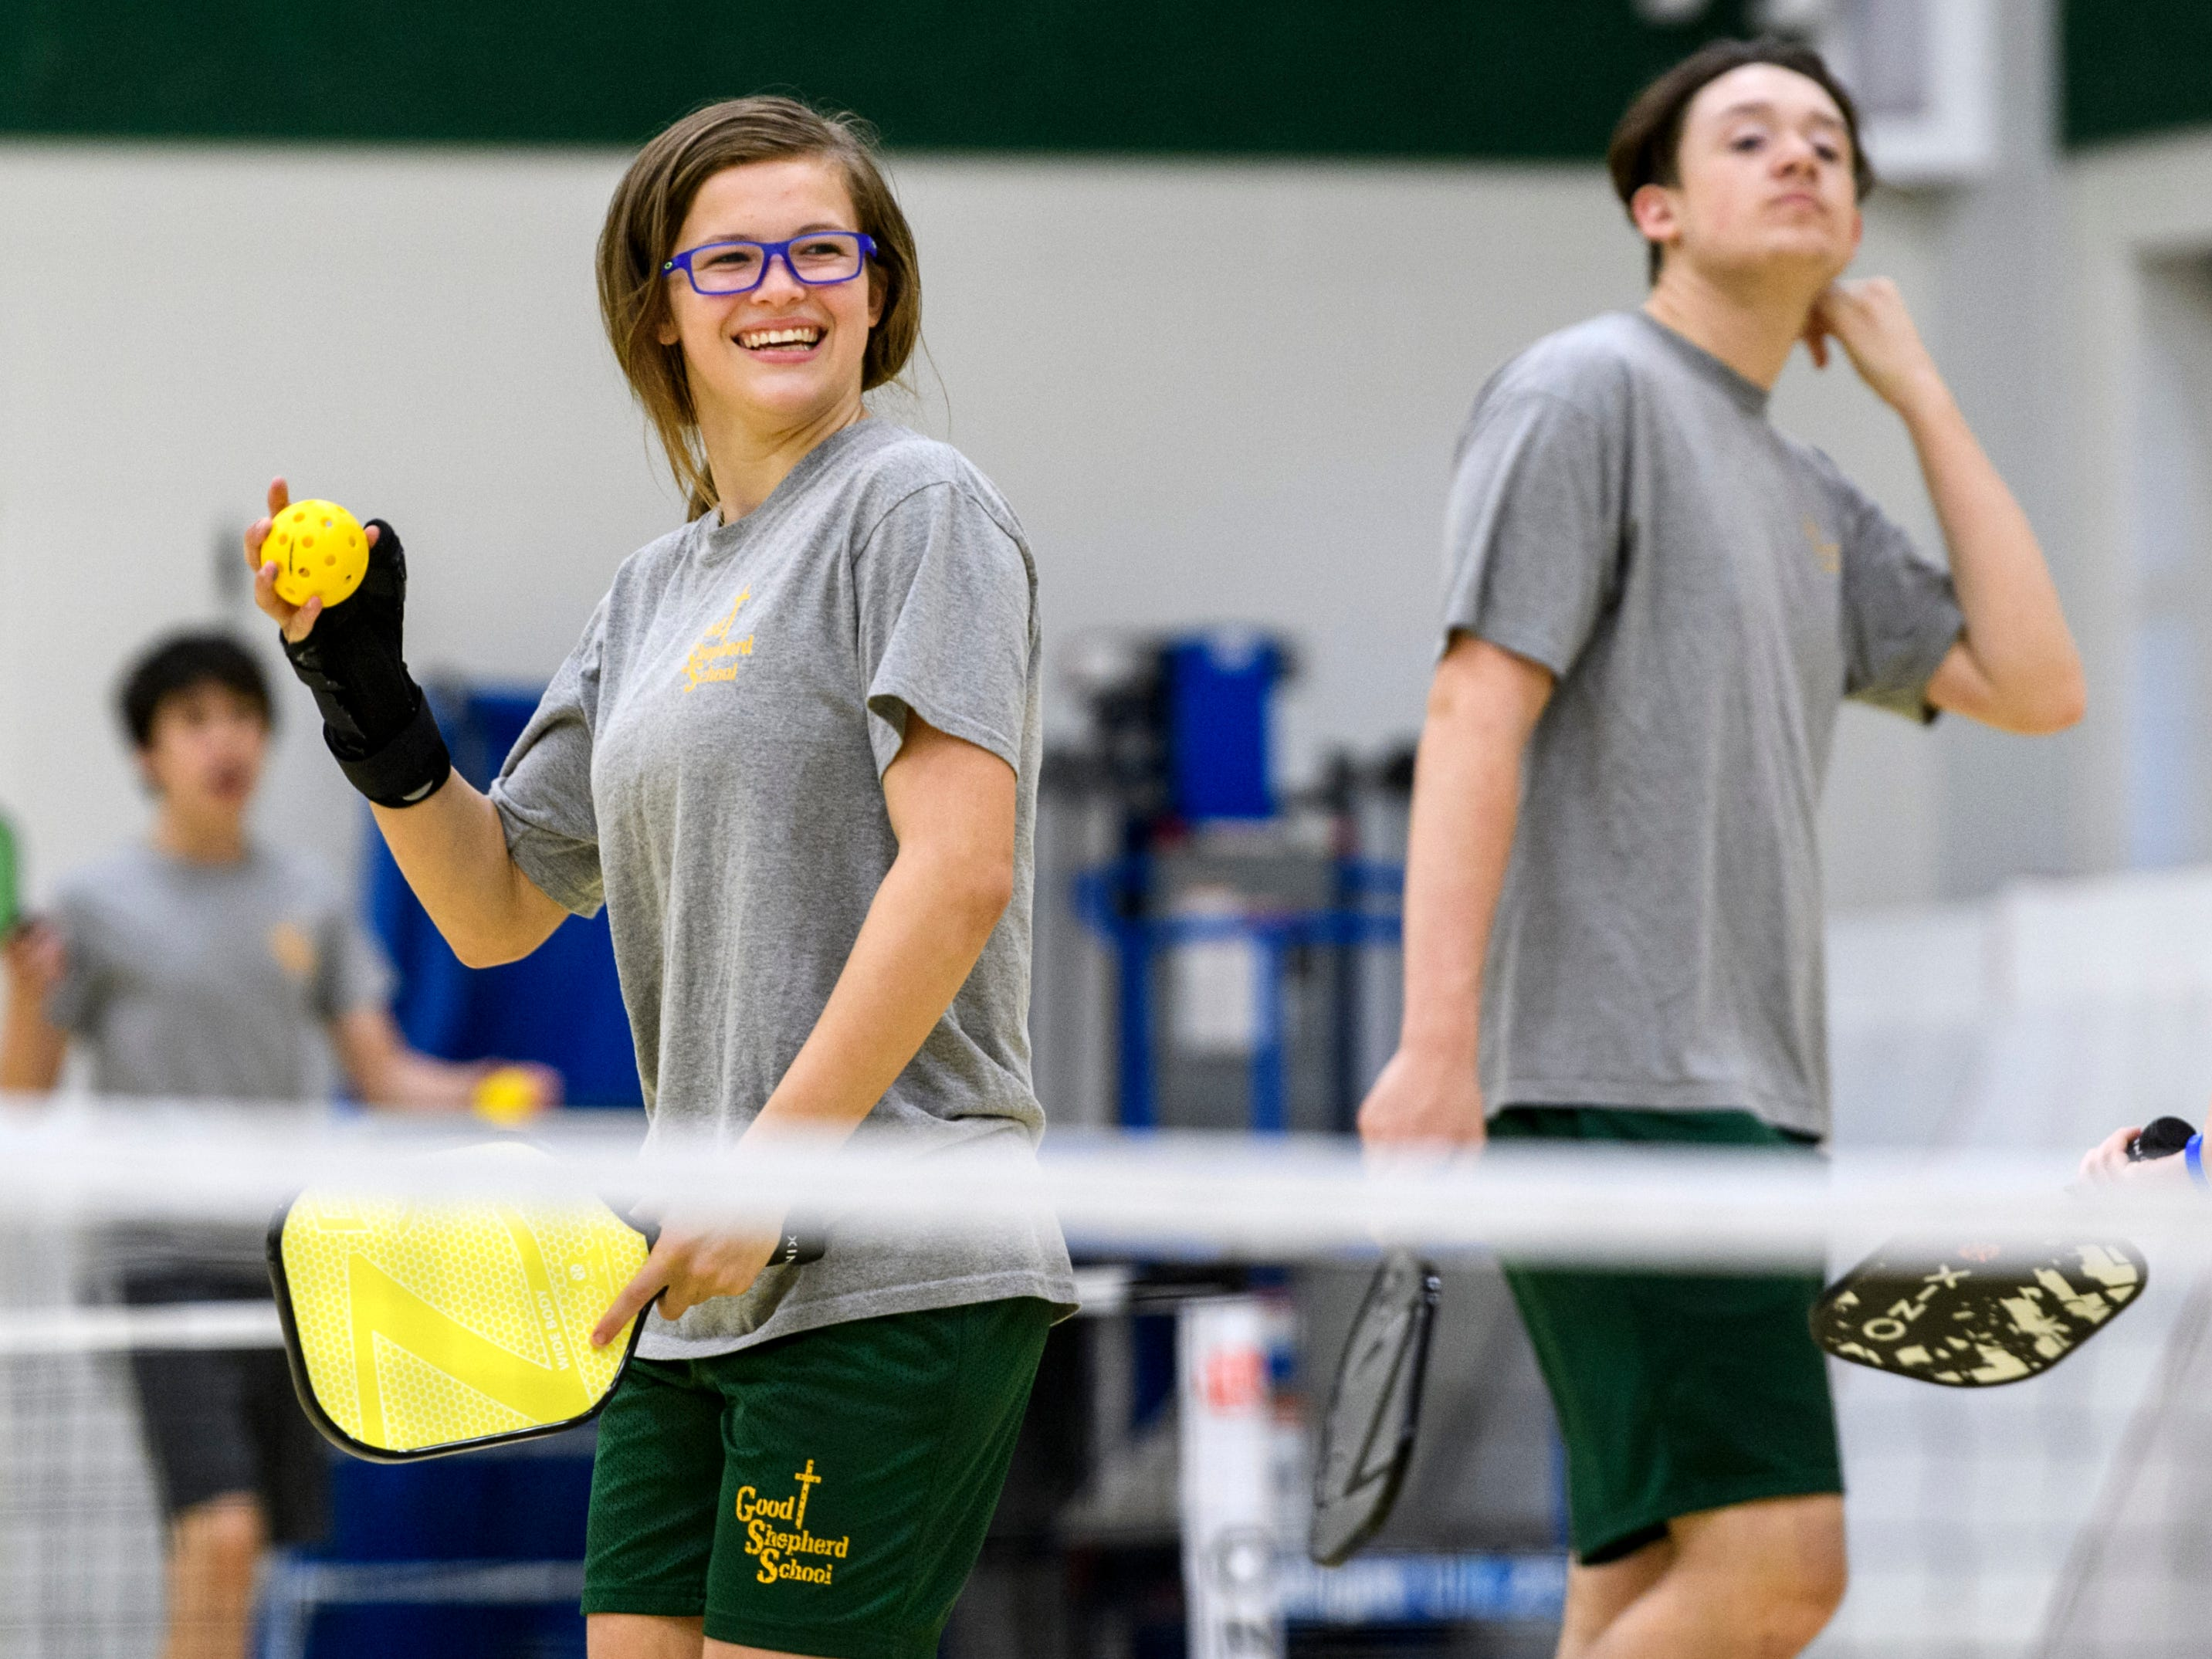 Kaylie laughs as she plays Pickleball with her fellow eighth grade classmates during gym class at Good Shepherd Catholic School in Evansville, Wednesday morning, May 15, 2019.